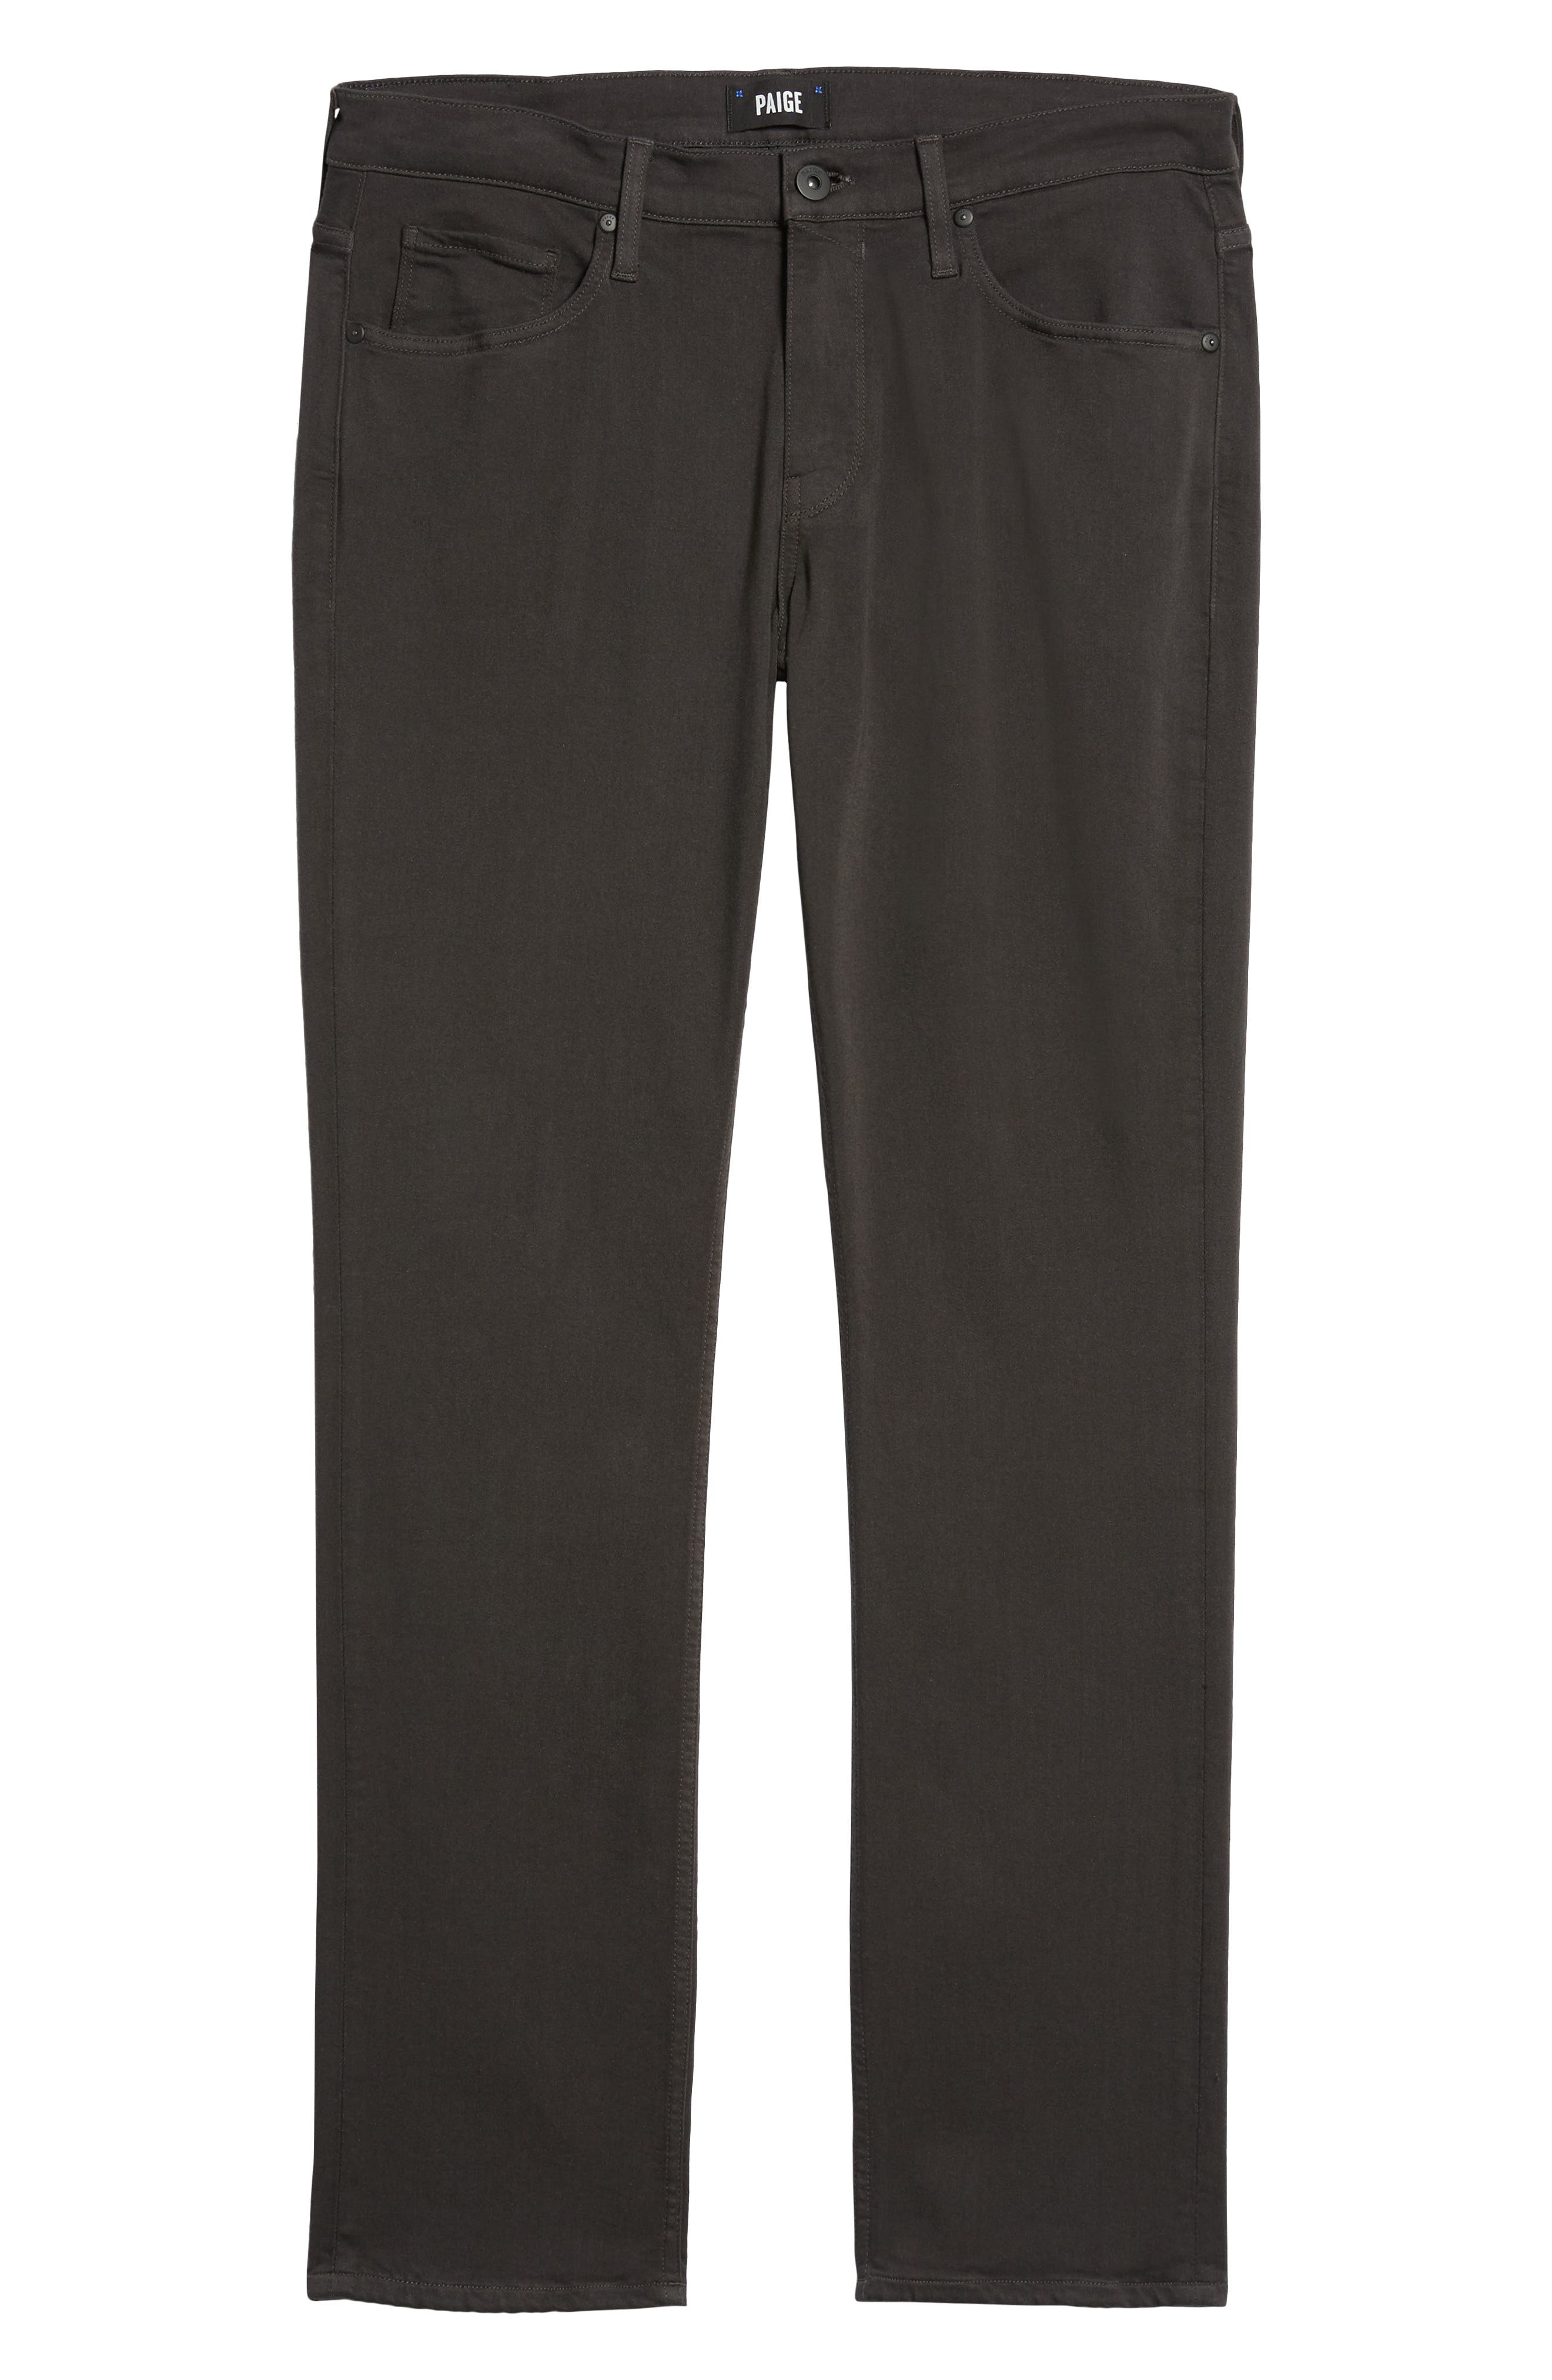 Transcend - Normandie Straight Leg Jeans,                             Alternate thumbnail 6, color,                             MIDNIGHT GREY